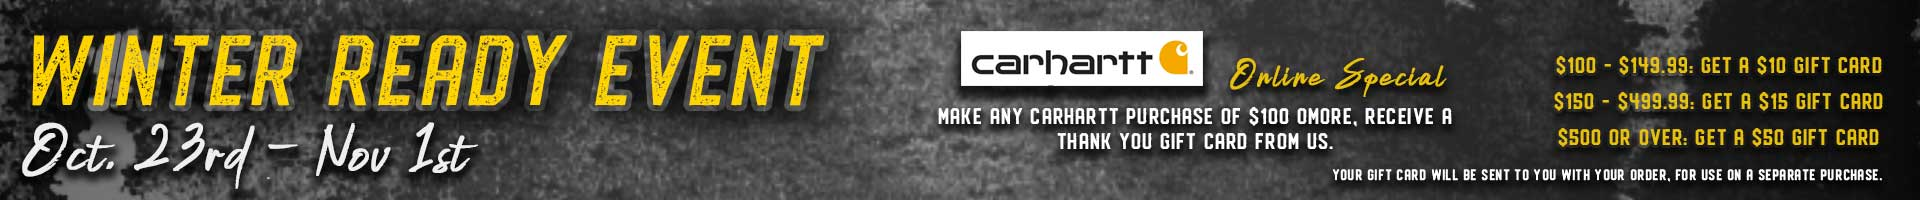 carhartt clothing on sale